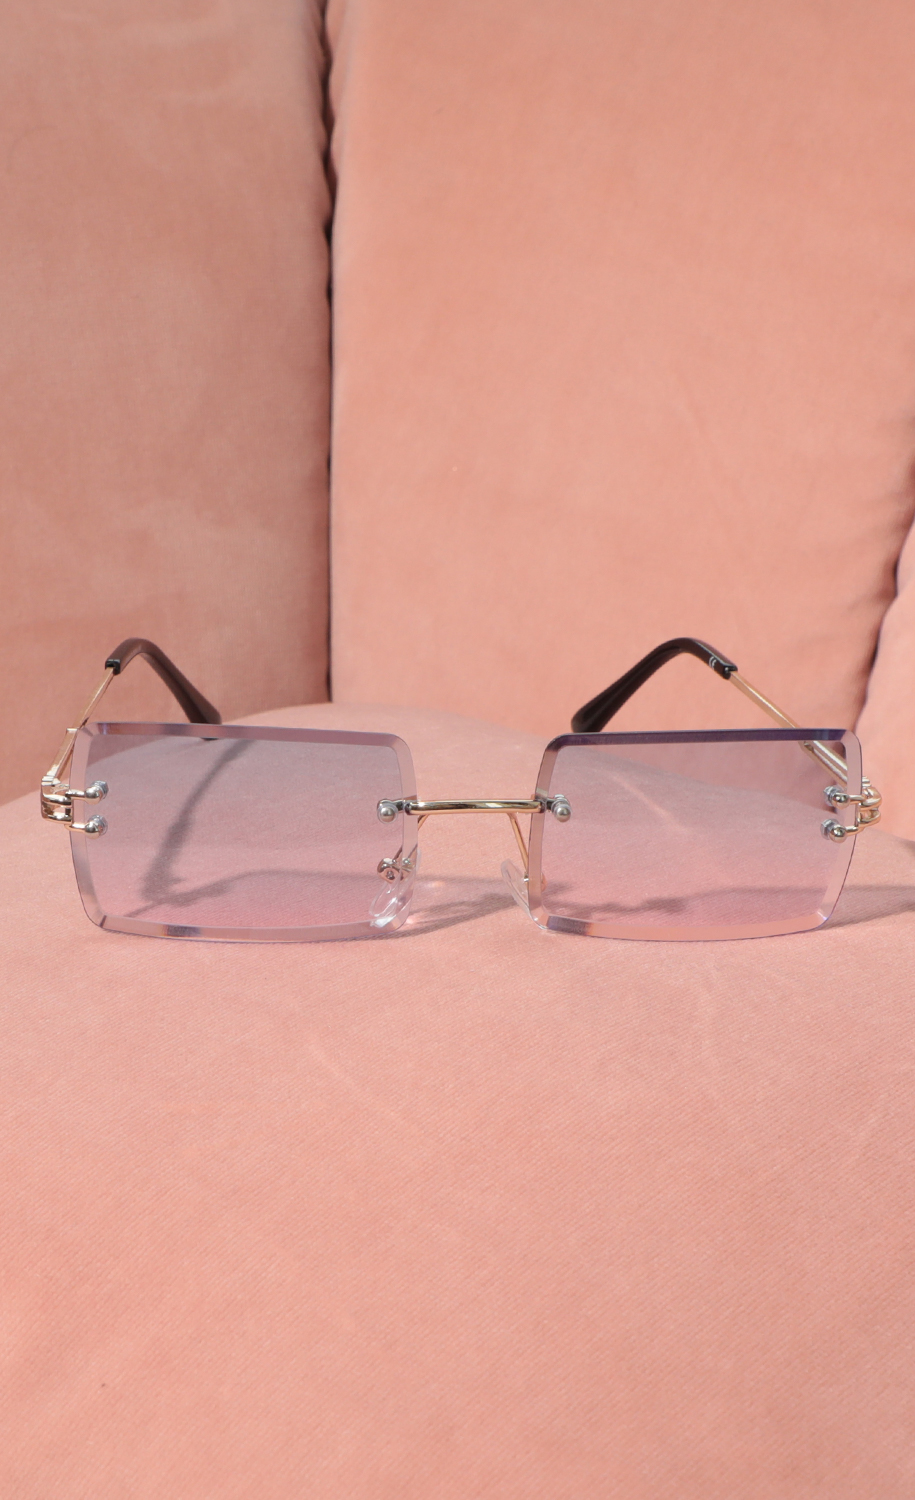 90s Baby Rectangle Sunglasses in Ombre